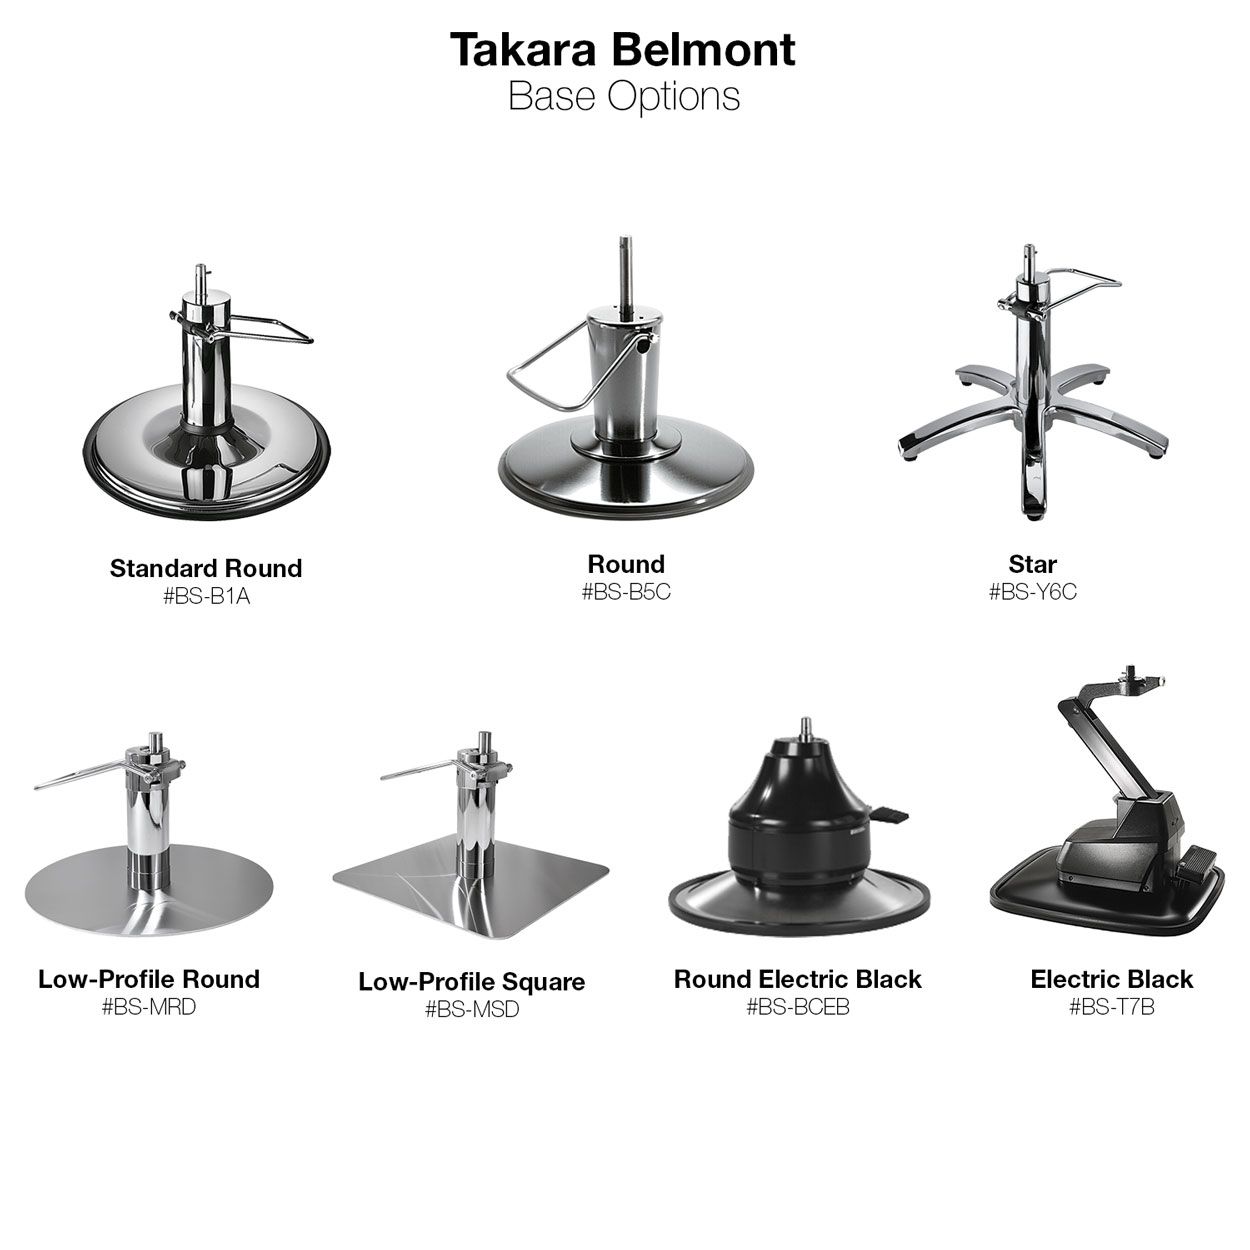 Takara Belmont Bellus Styling Chair alternative product image 4